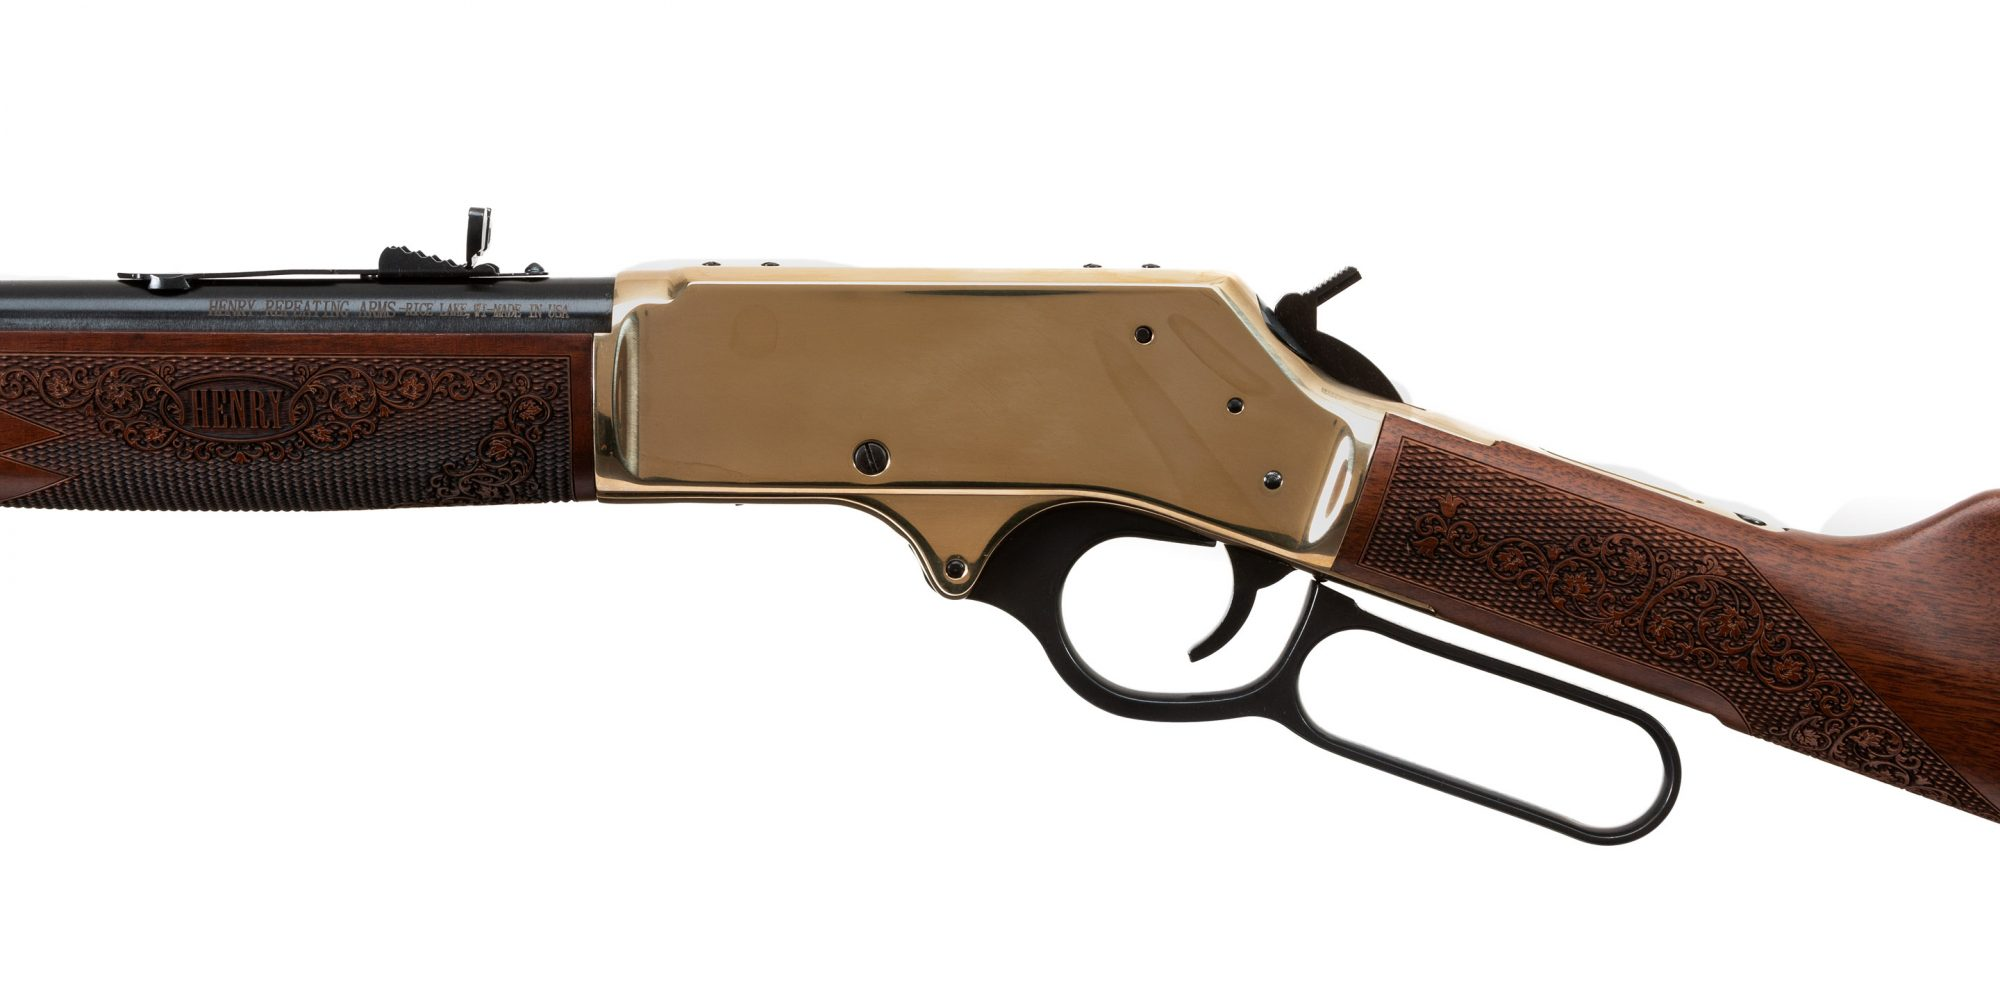 Photo of a Henry Side Gate Lever Action Rifle, for sale by Turnbull Restoration of Bloomfield, NY